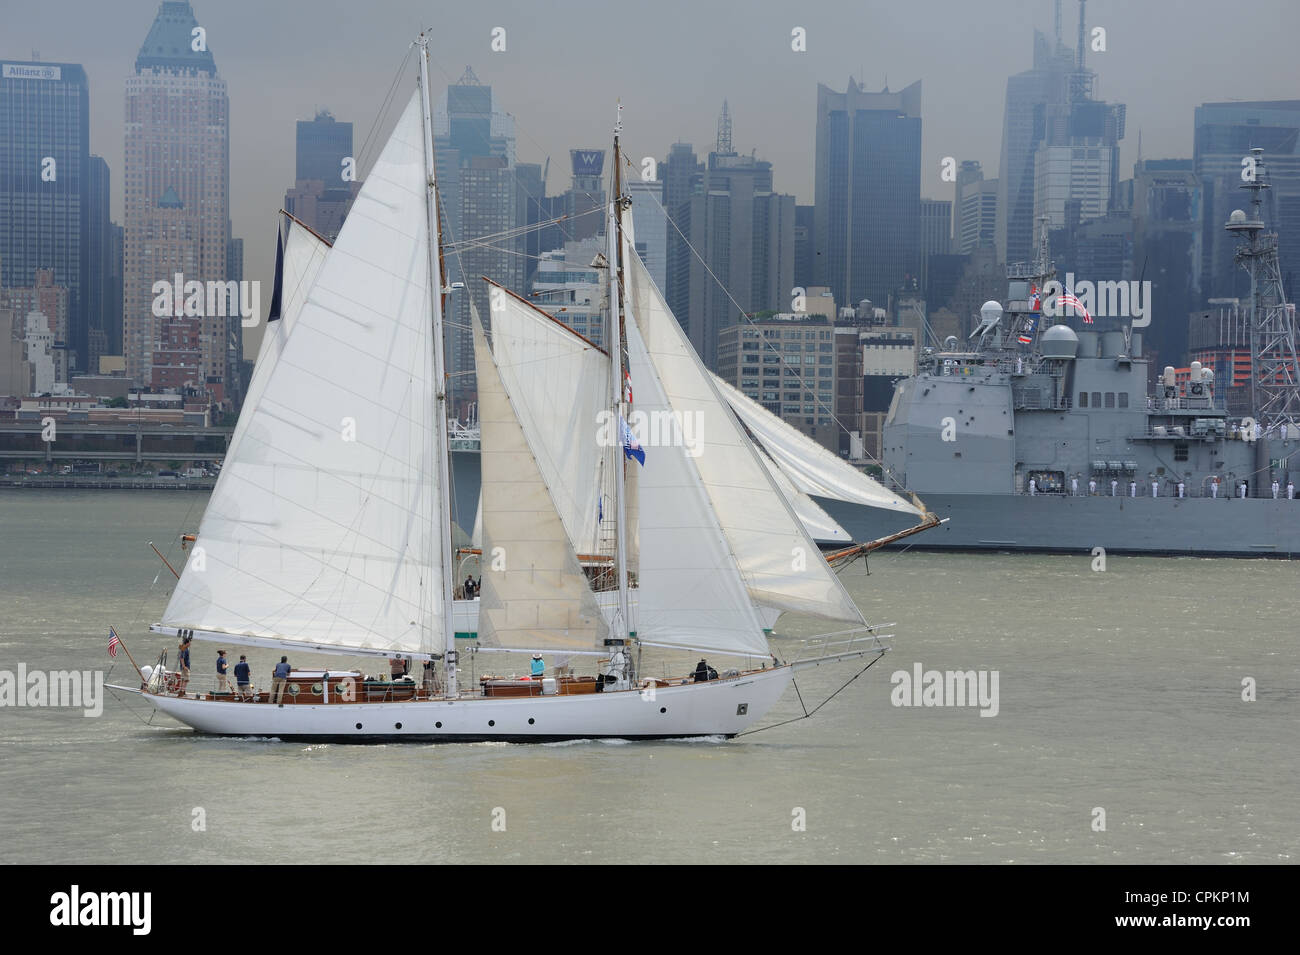 The schooner Shearwater, built in 1929 and a national landmark, and the cruiser USS San Jacinto, participated in - Stock Image